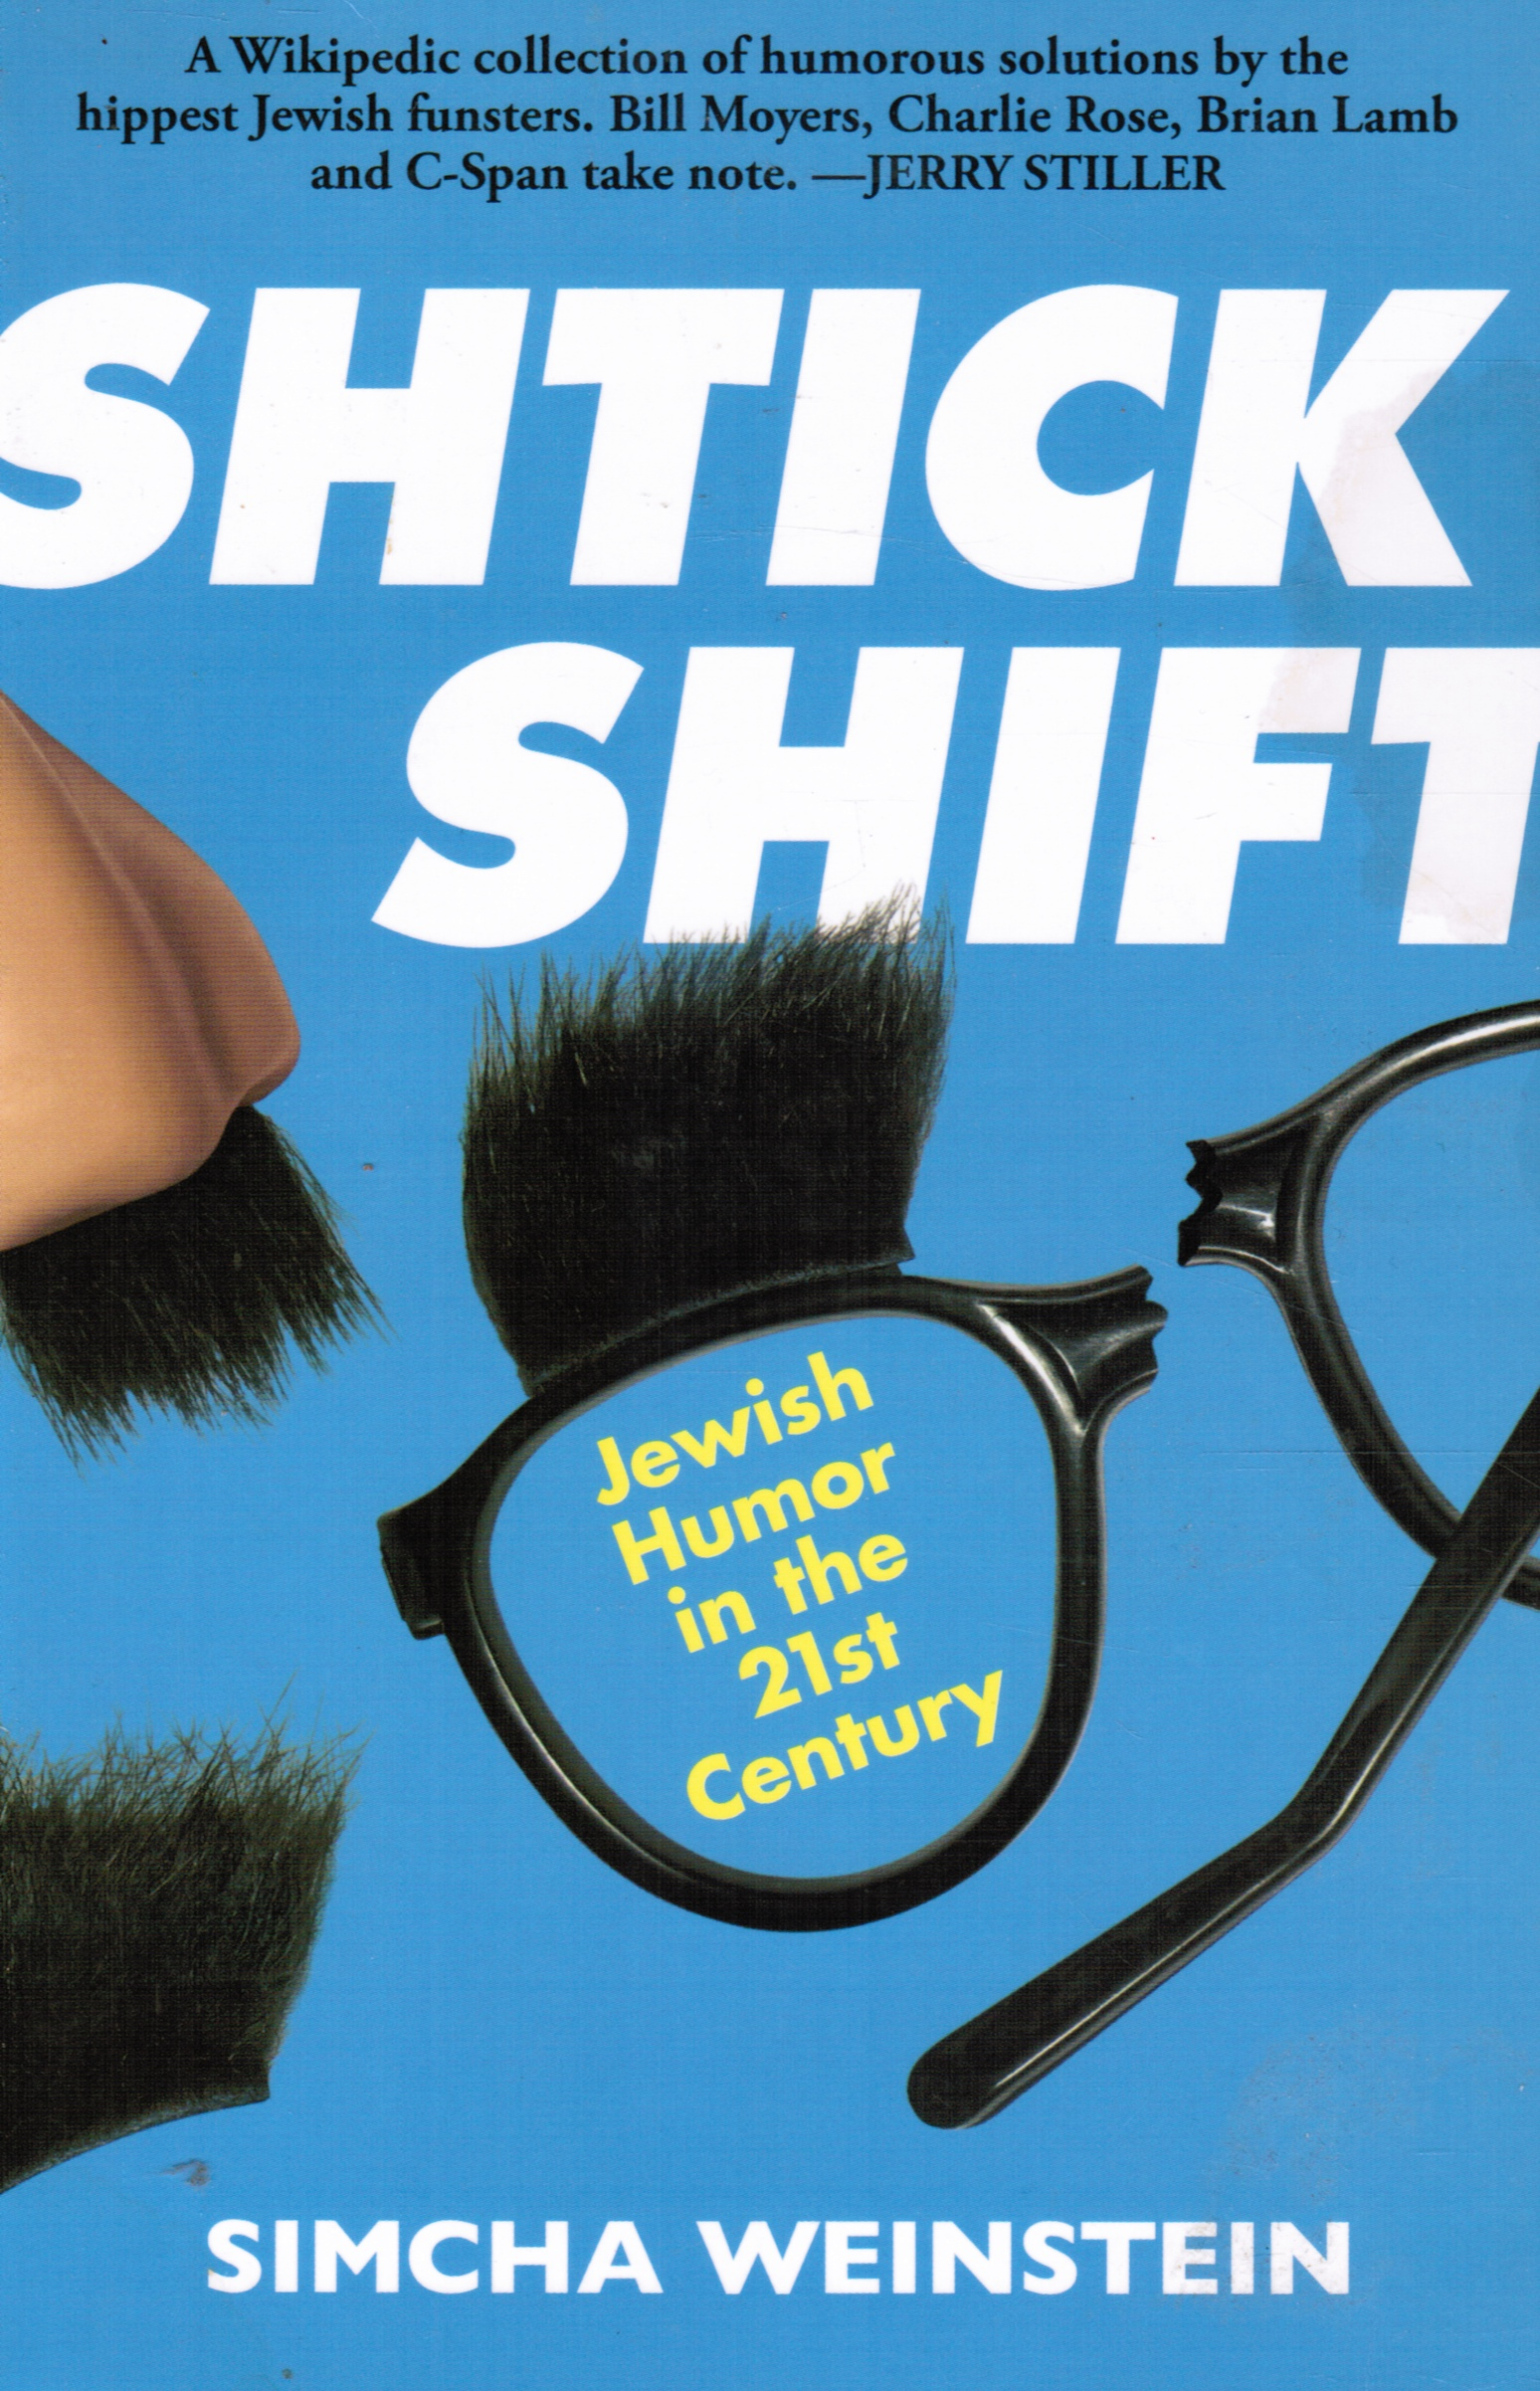 Image for Shtick Shift: Jewish Humor in the 21st Century